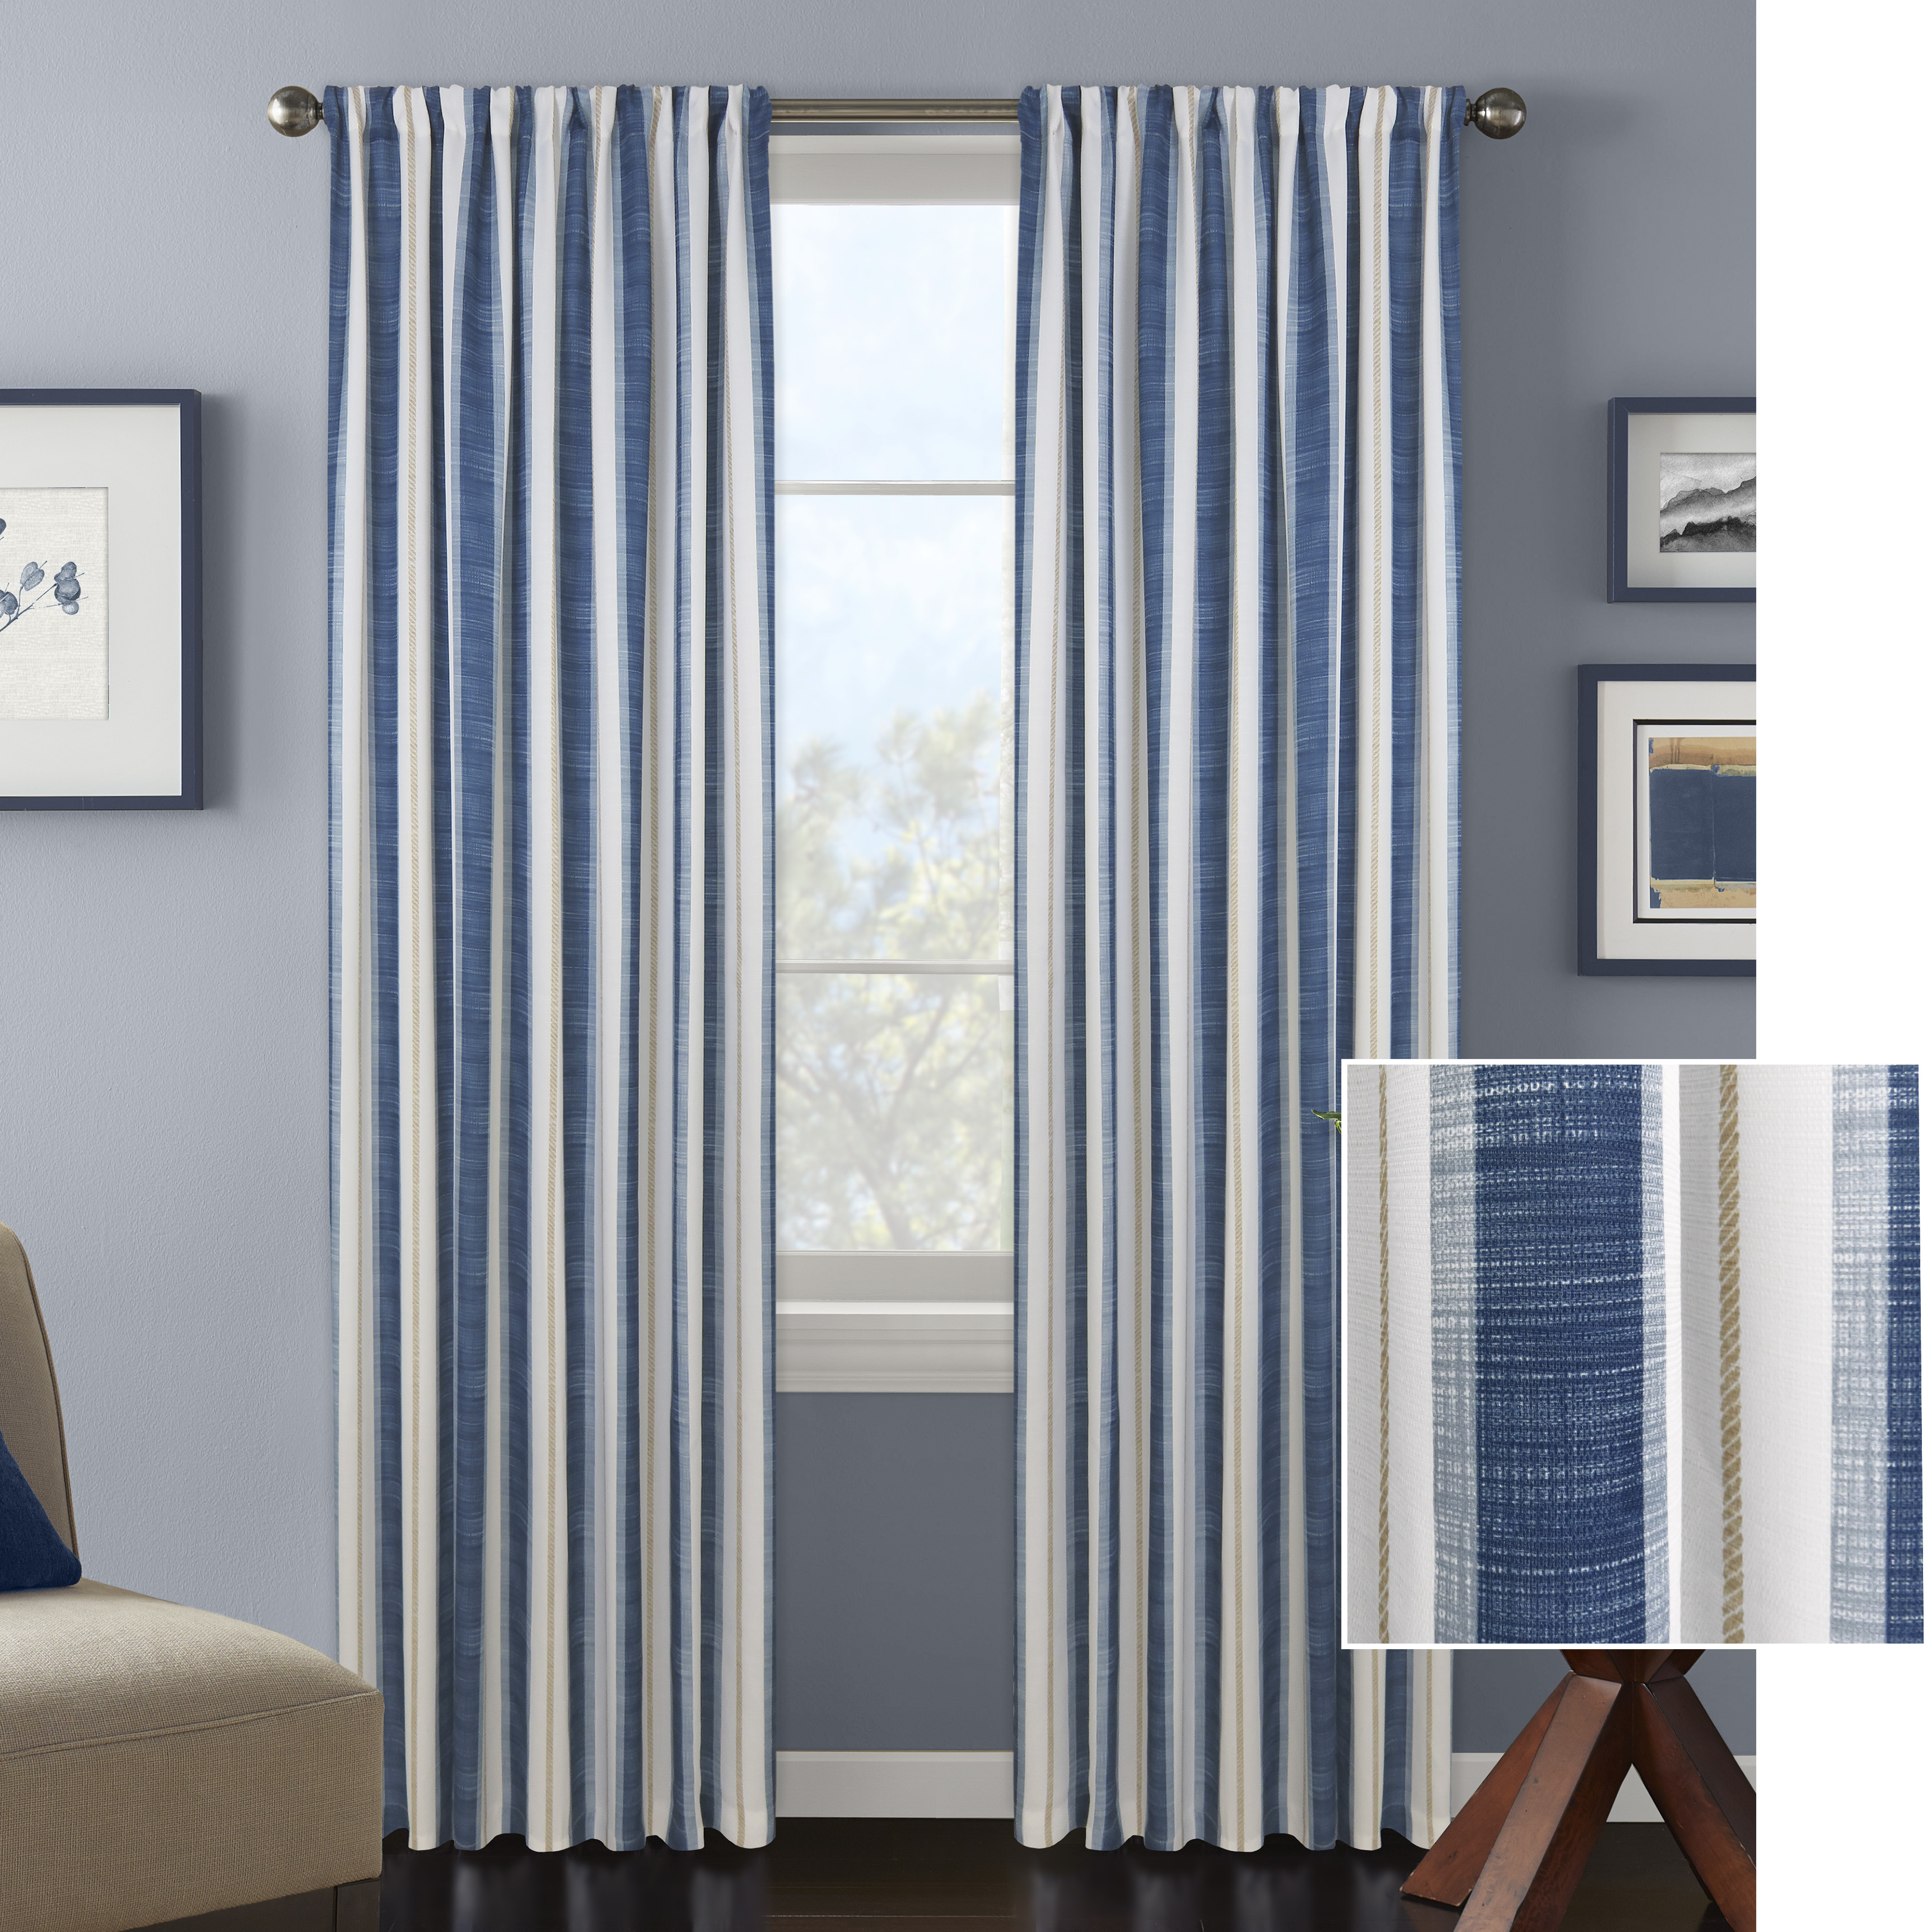 Better Homes and Gardens Vertical Stripes Window Curtain Panel